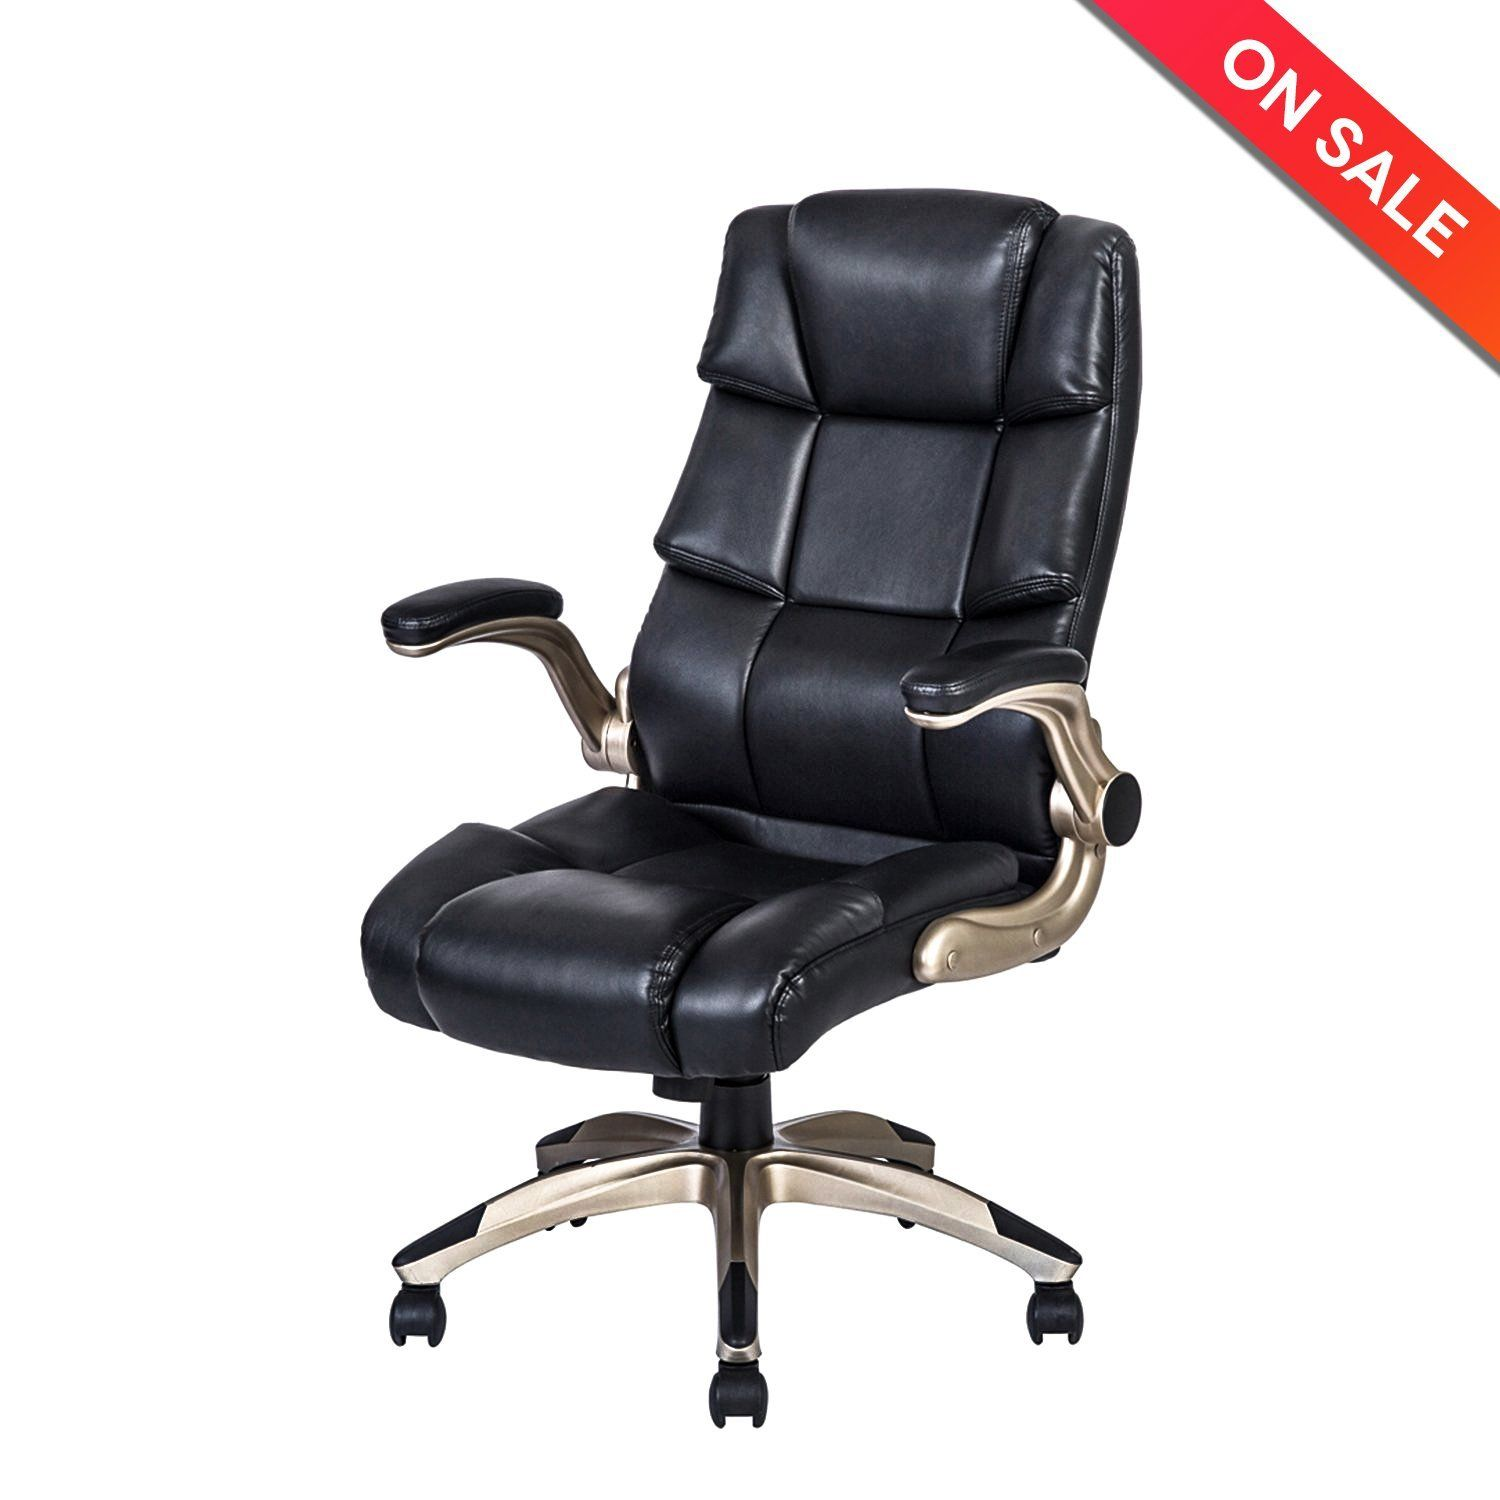 Amazon Com Lch Ergonomic High Back Leather Office Chair Adjustable Padded Flip Up Arms Executive C Office Chair Leather Office Chair Executive Office Chairs